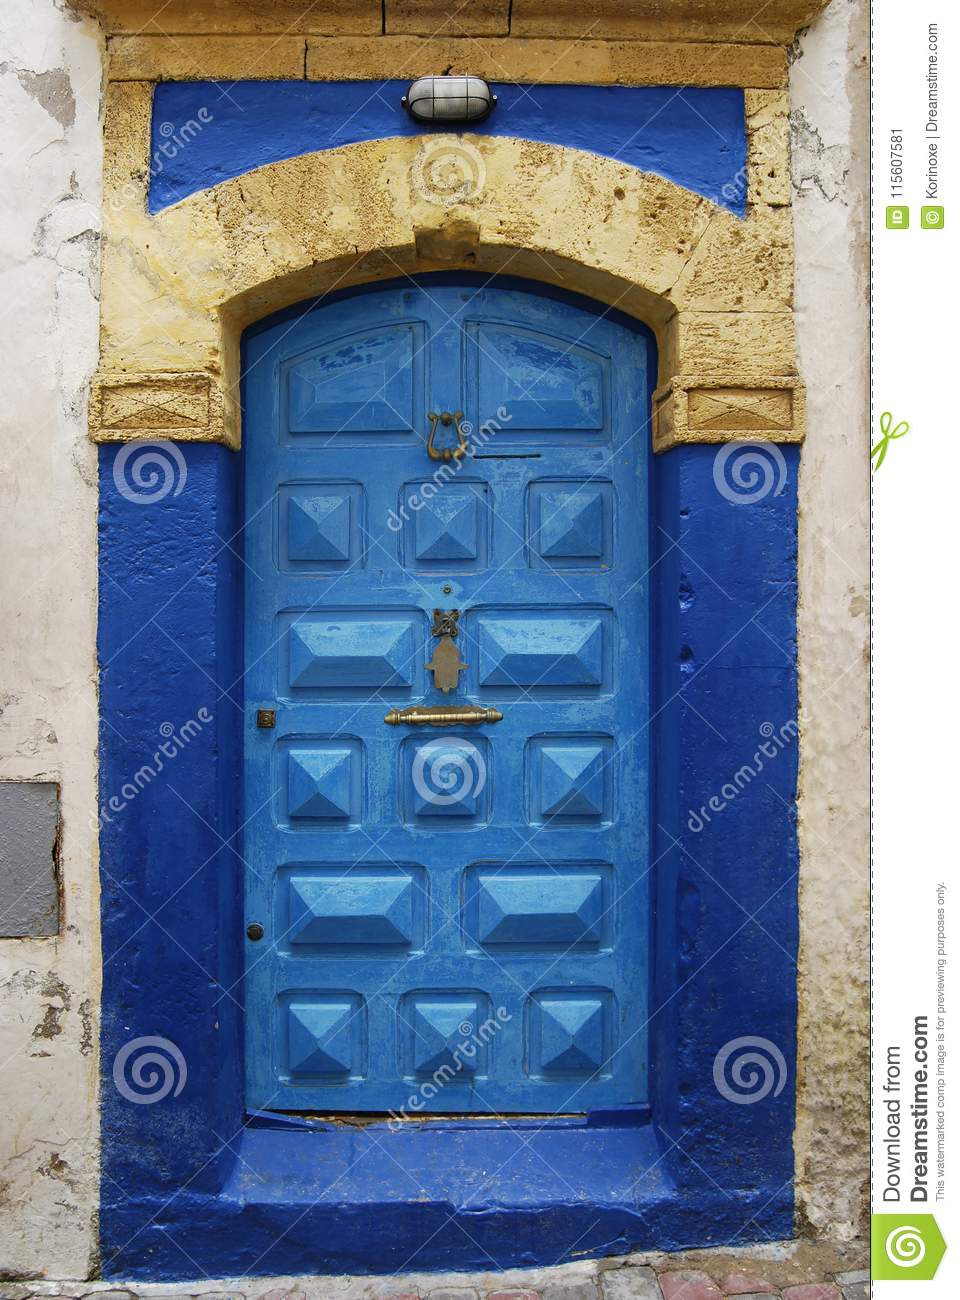 Blue Door With Fatima Hand Symbol Stock Image Image Of Moroccan